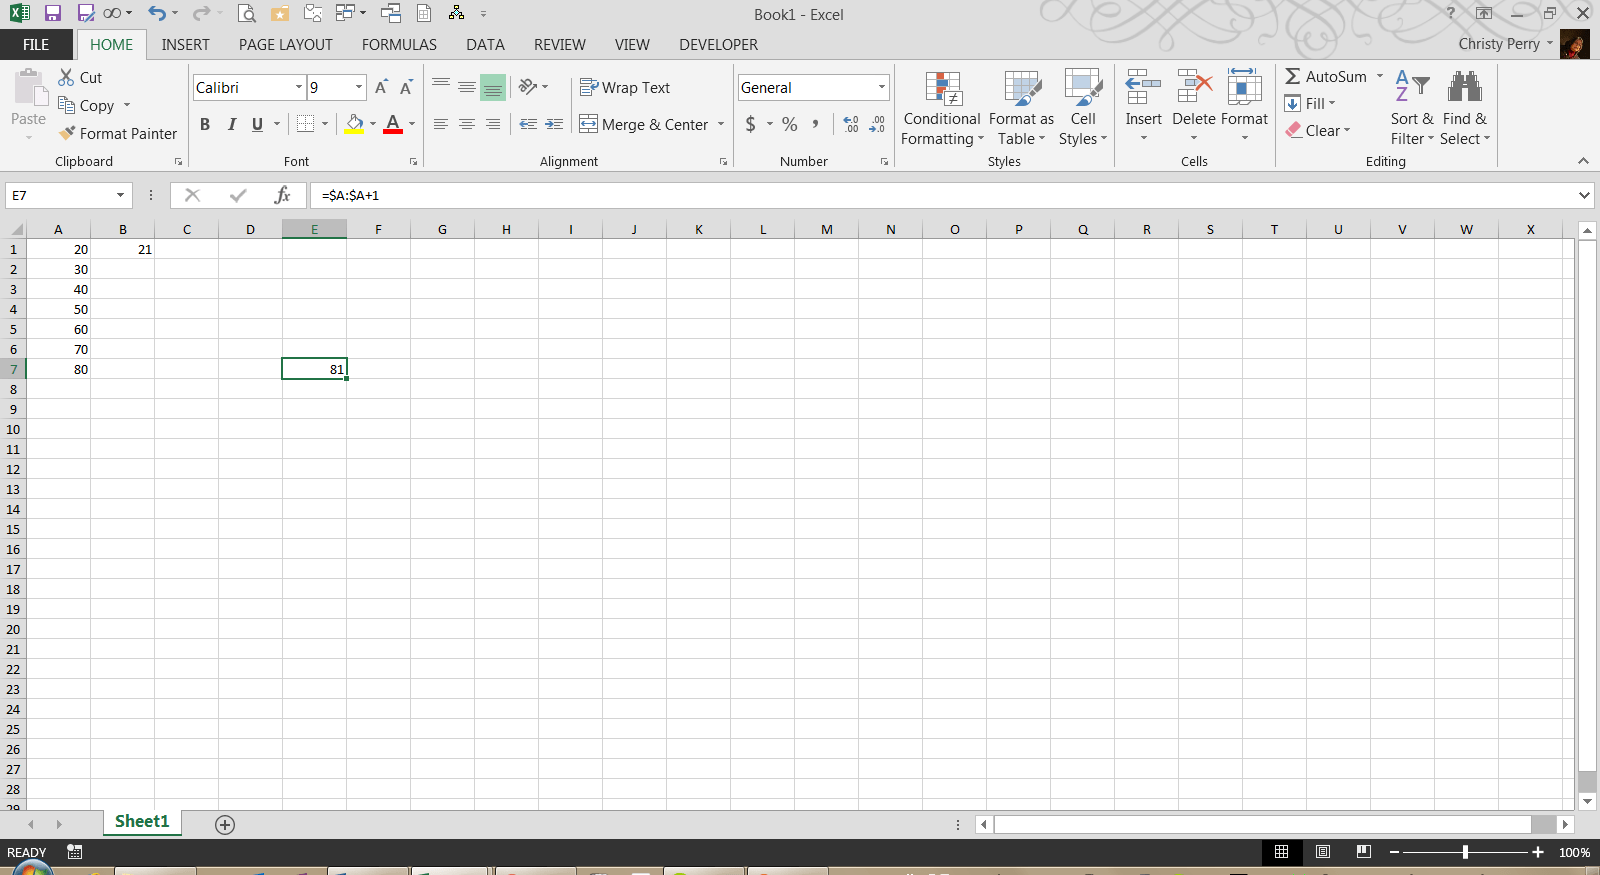 Excel Formula References Why Copying Formulas Sometimes Goes Wrong